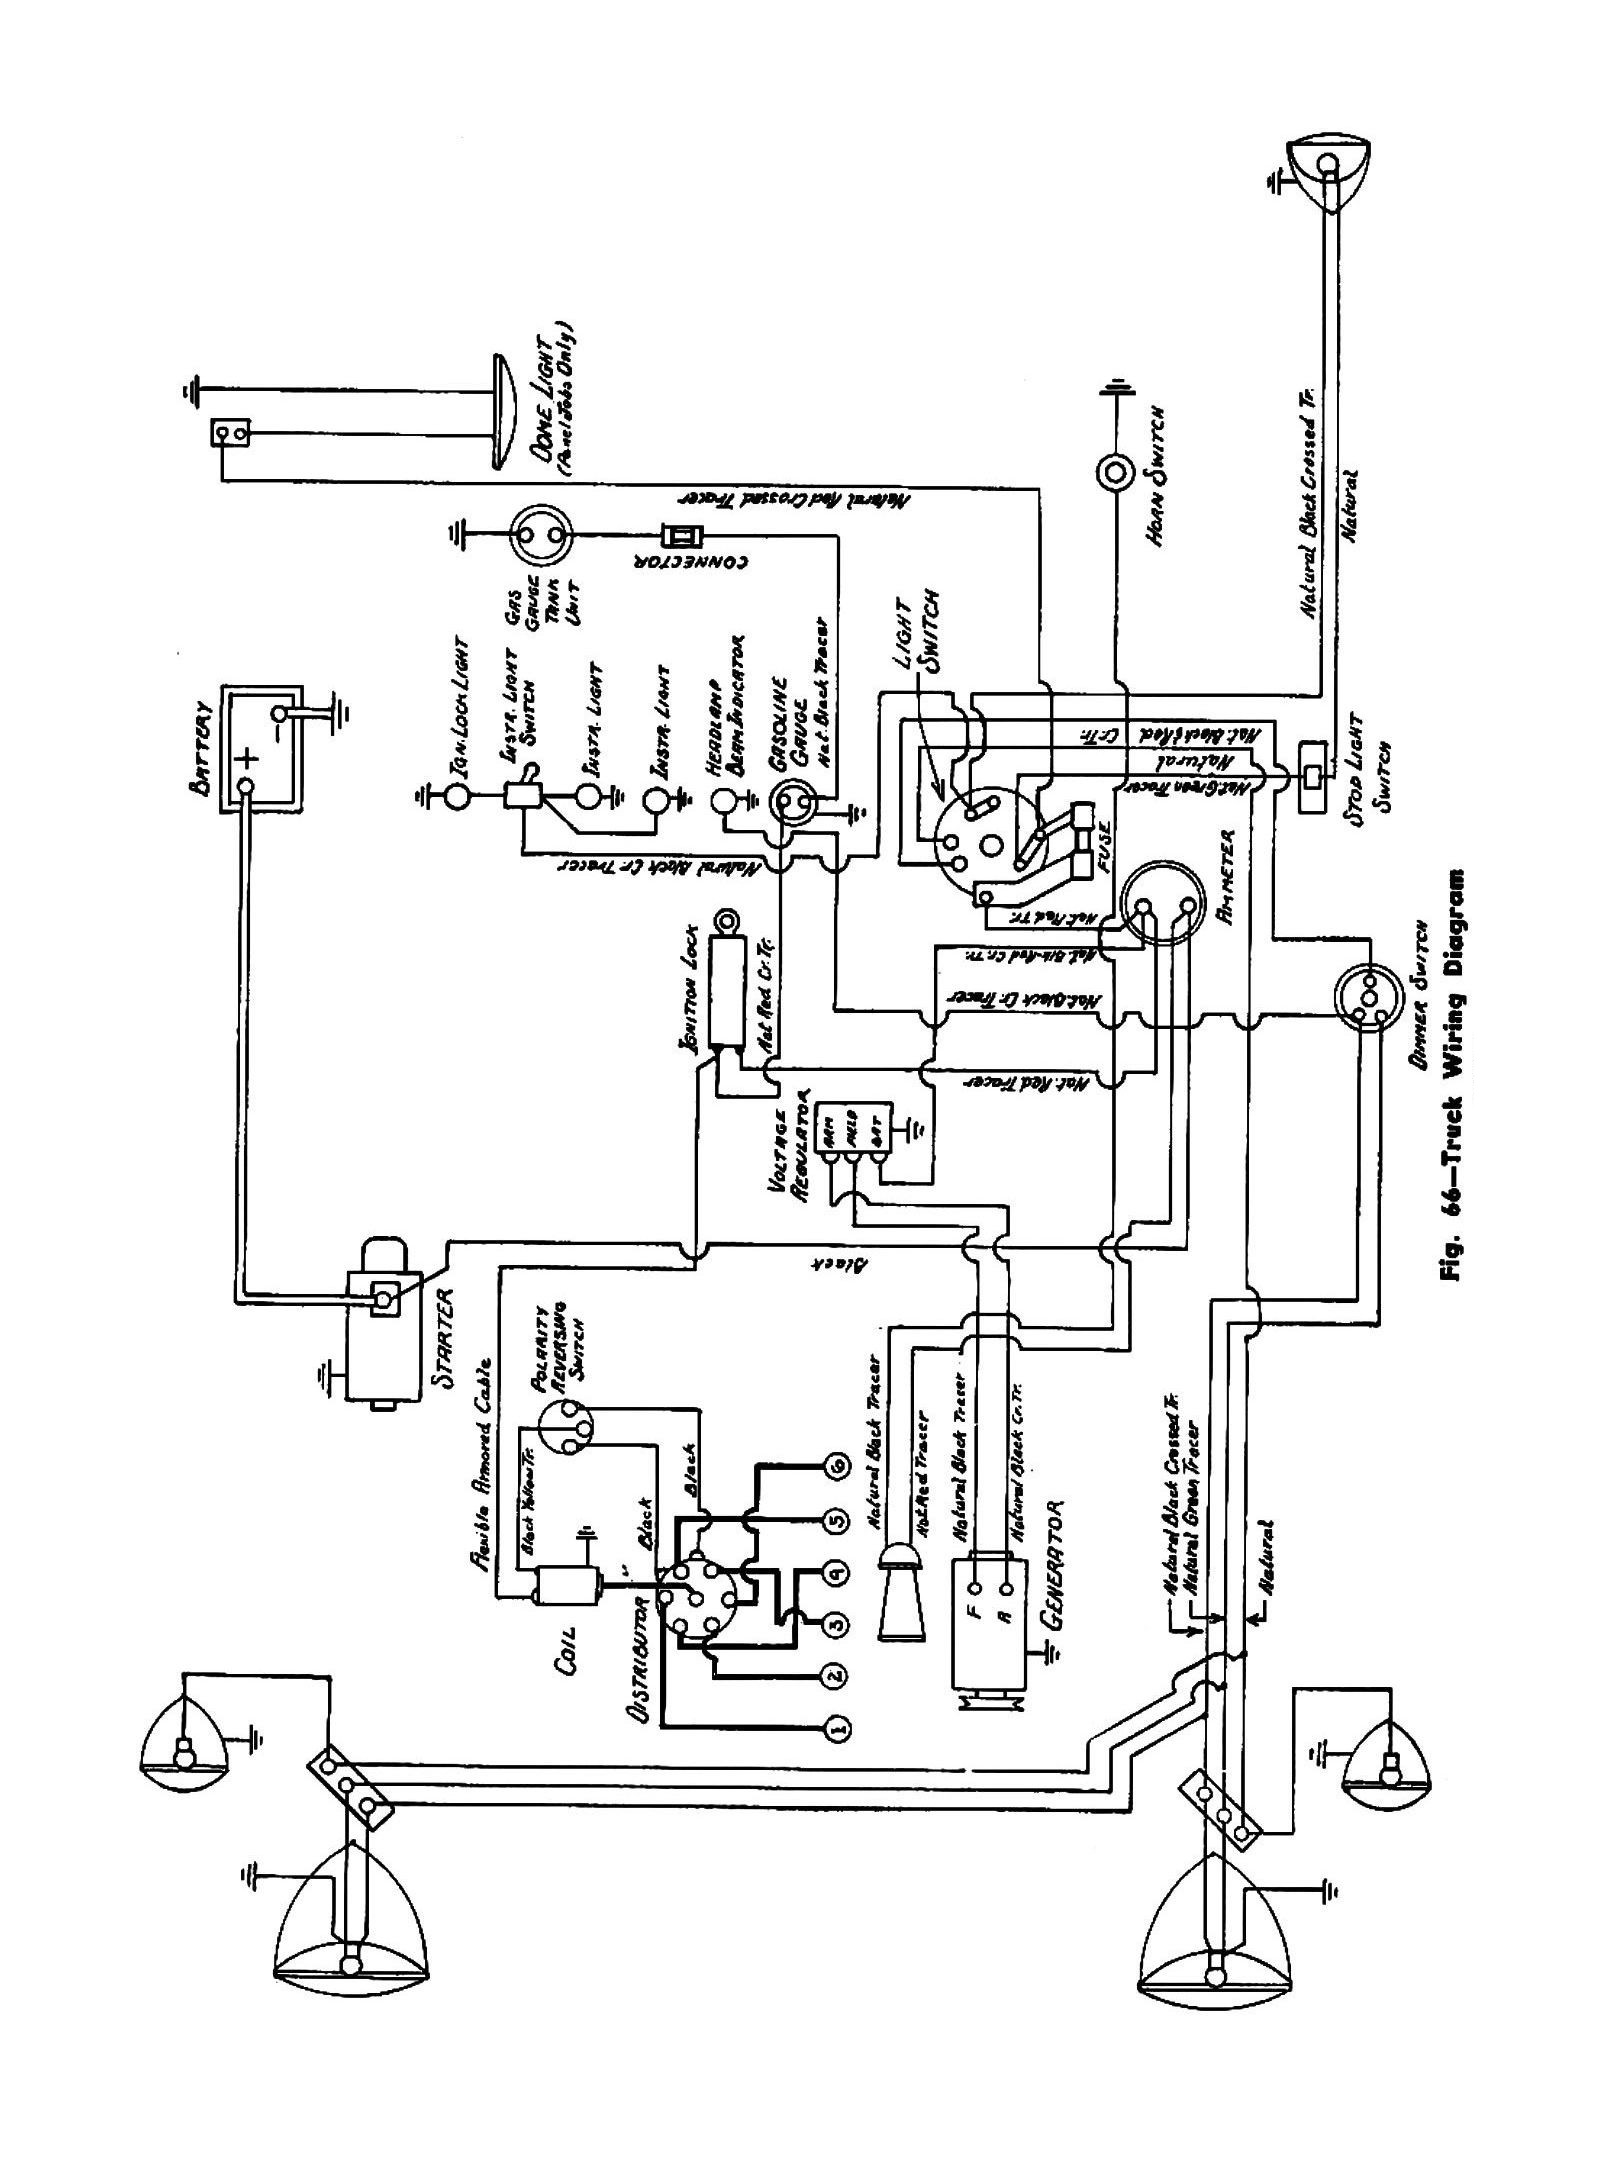 45truck 1968 chevy pickup wiring diagram wiring diagram simonand truck wiring harness at highcare.asia